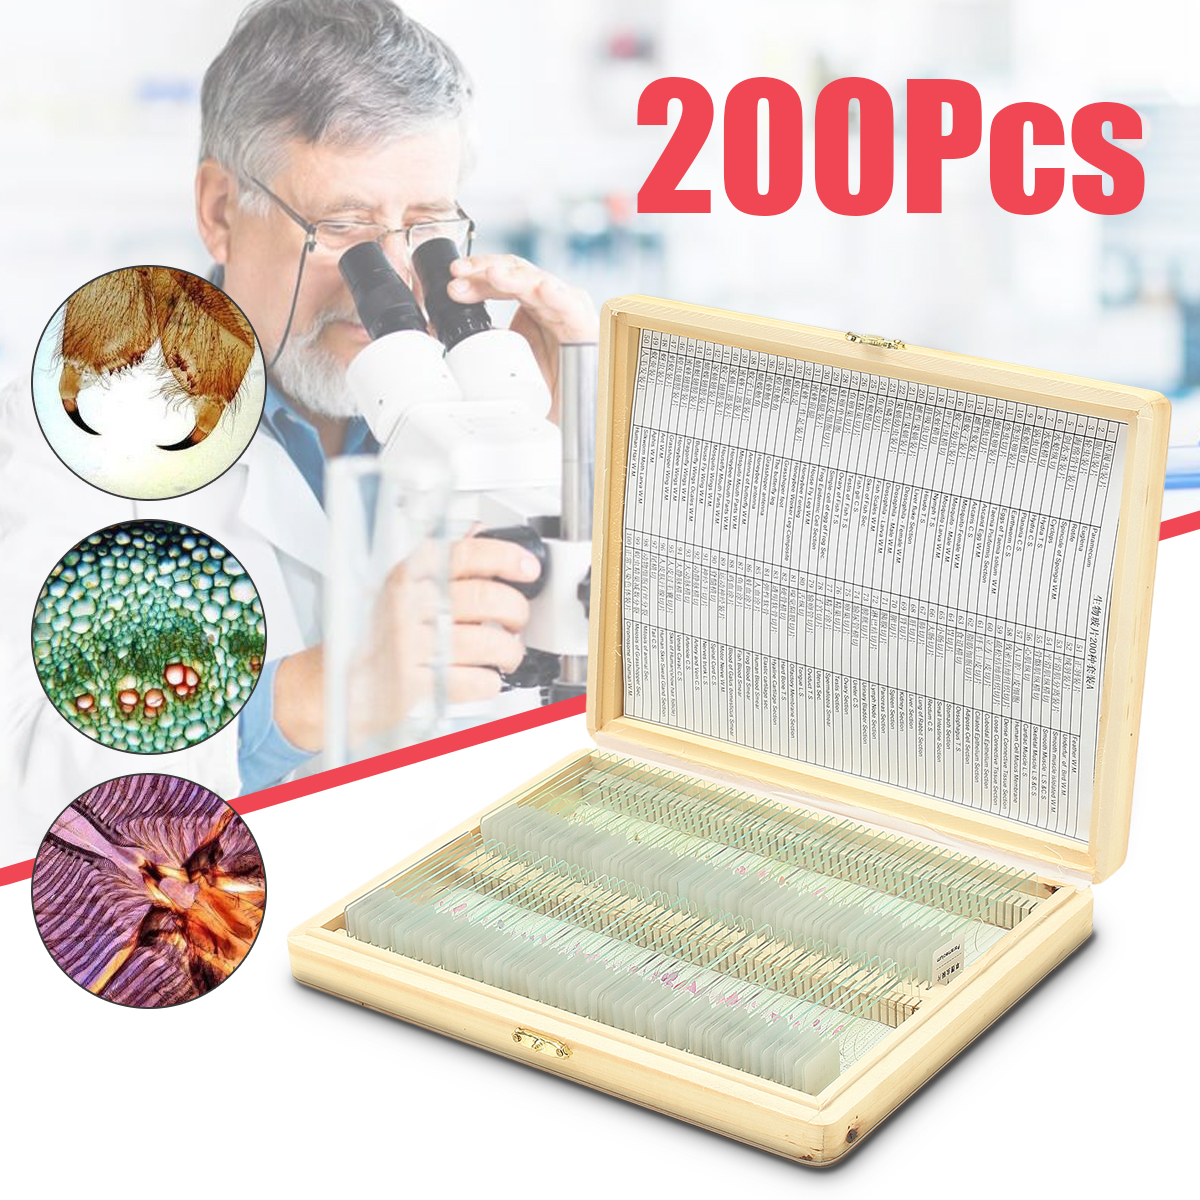 2xBoxes/Set Prepared Microscope Glass Slide Science Slides 100xPlant +100x Insects Tissues slides for Biological Education professional 50pcs prepared glass slides biological microscope slides specimen slides for science education learning teaching